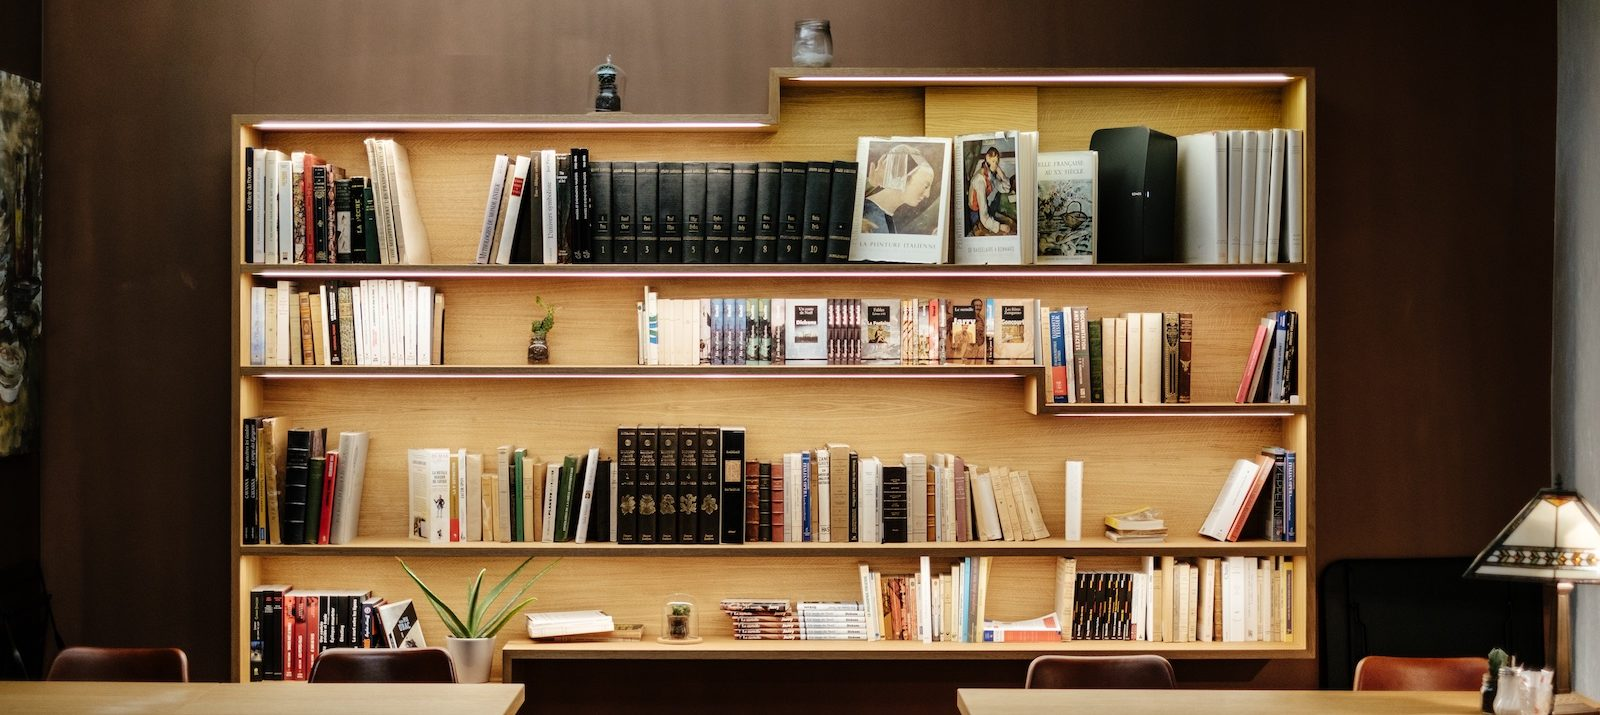 Best Organizing Tips: An Organized, Wall Mounted Bookcase